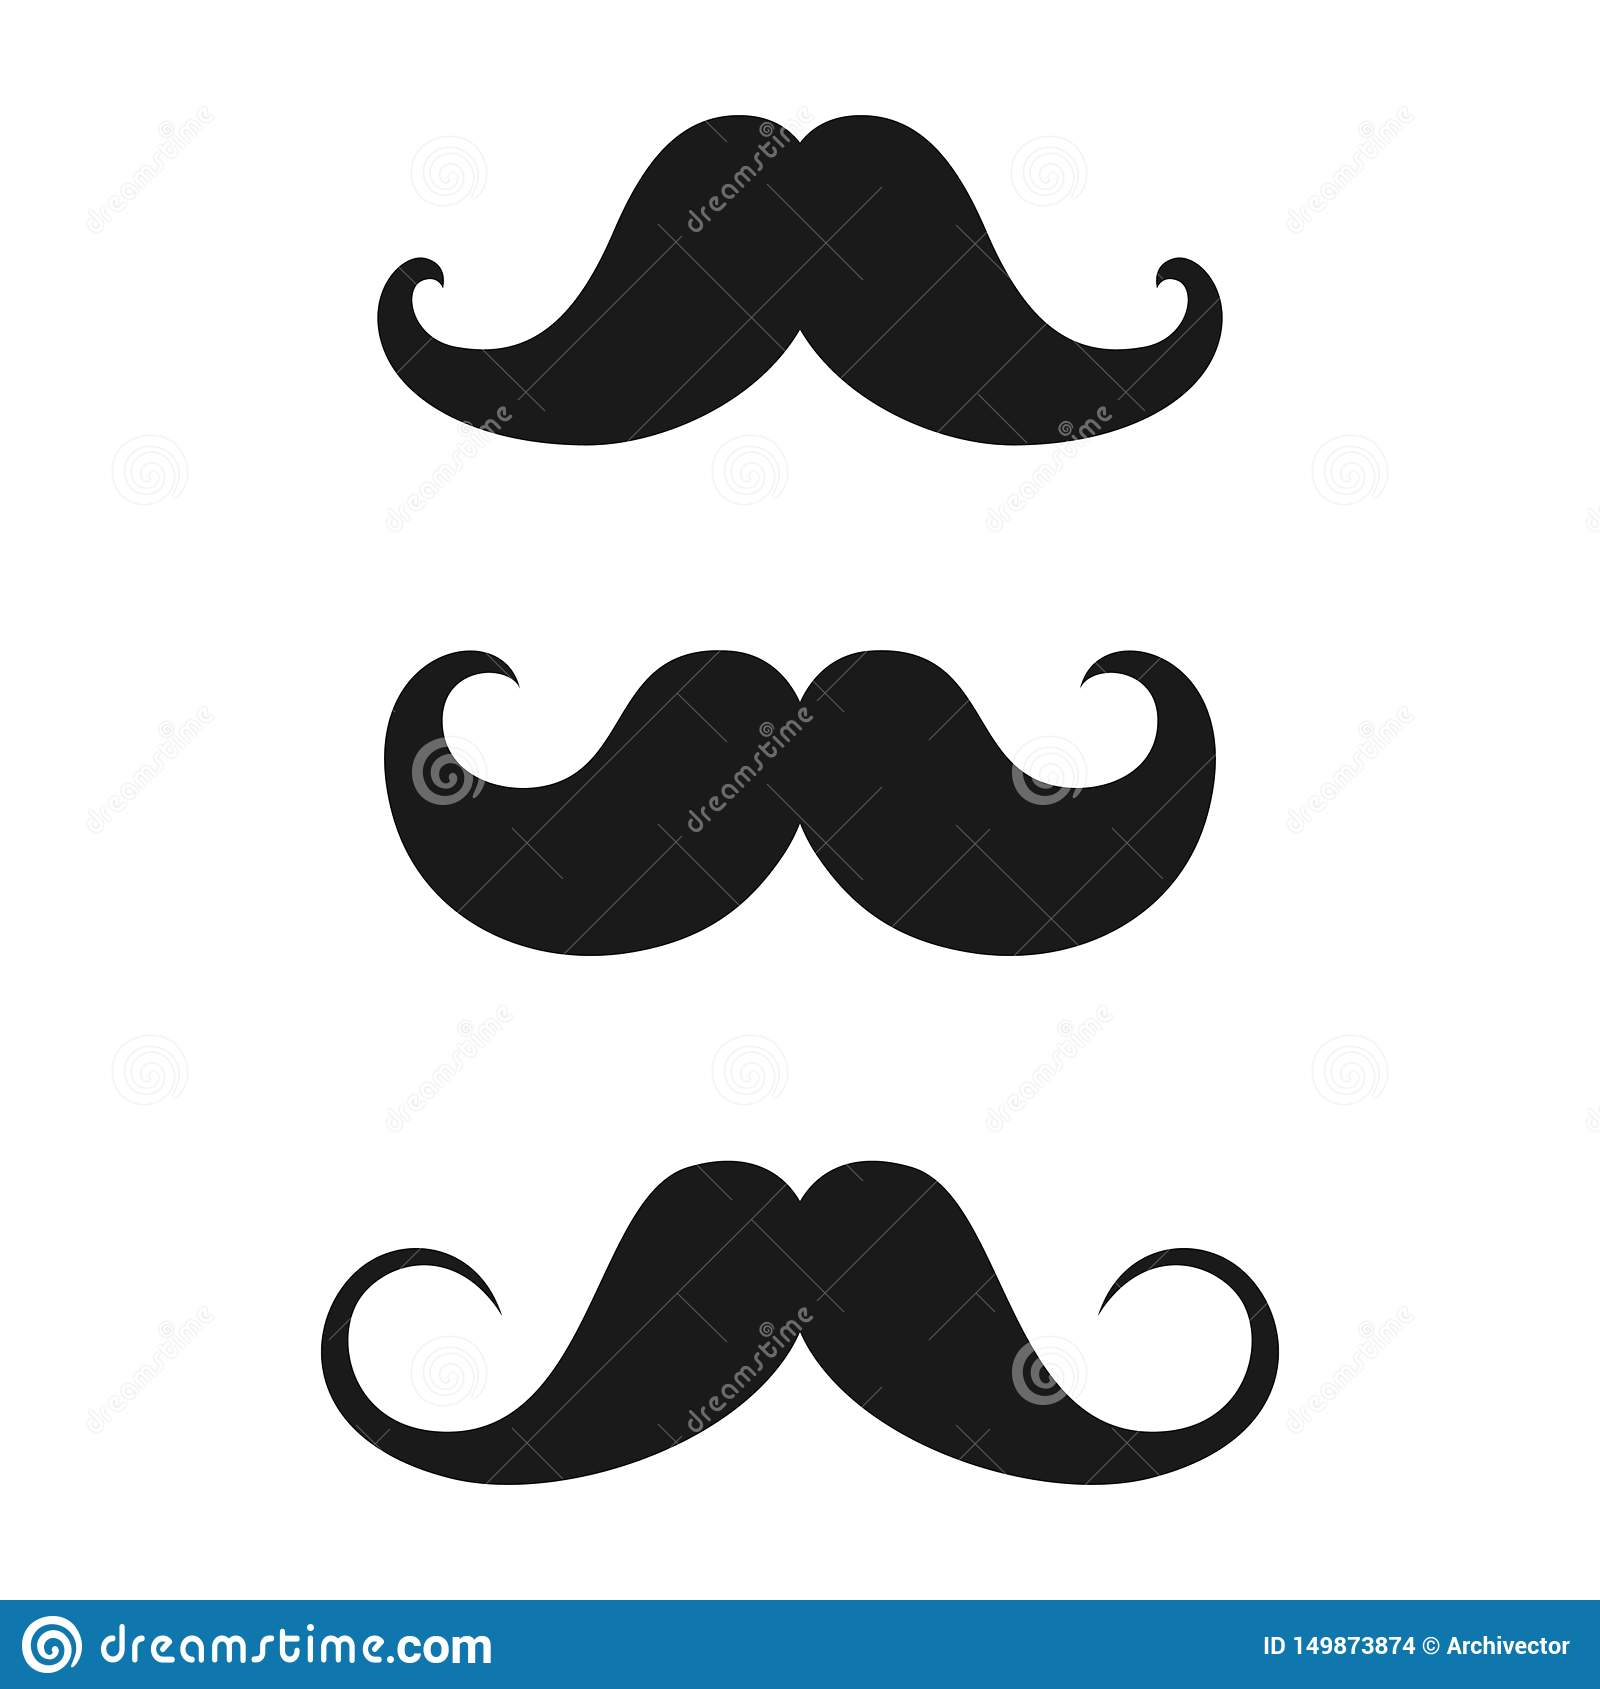 Mustaches old style icons set